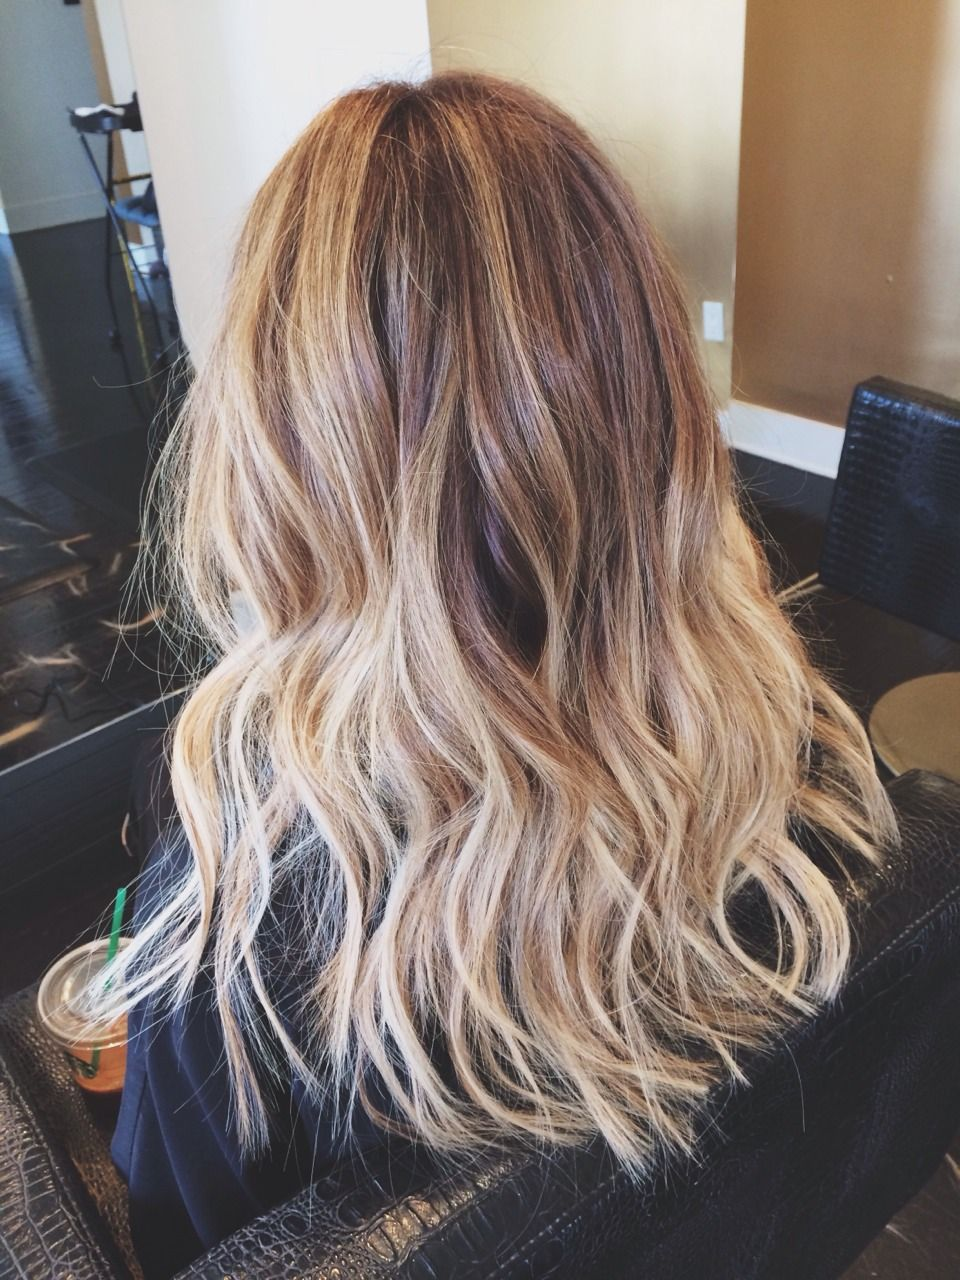 My Blonde Light Brown Ombre Hair With Beach Waves Instagram